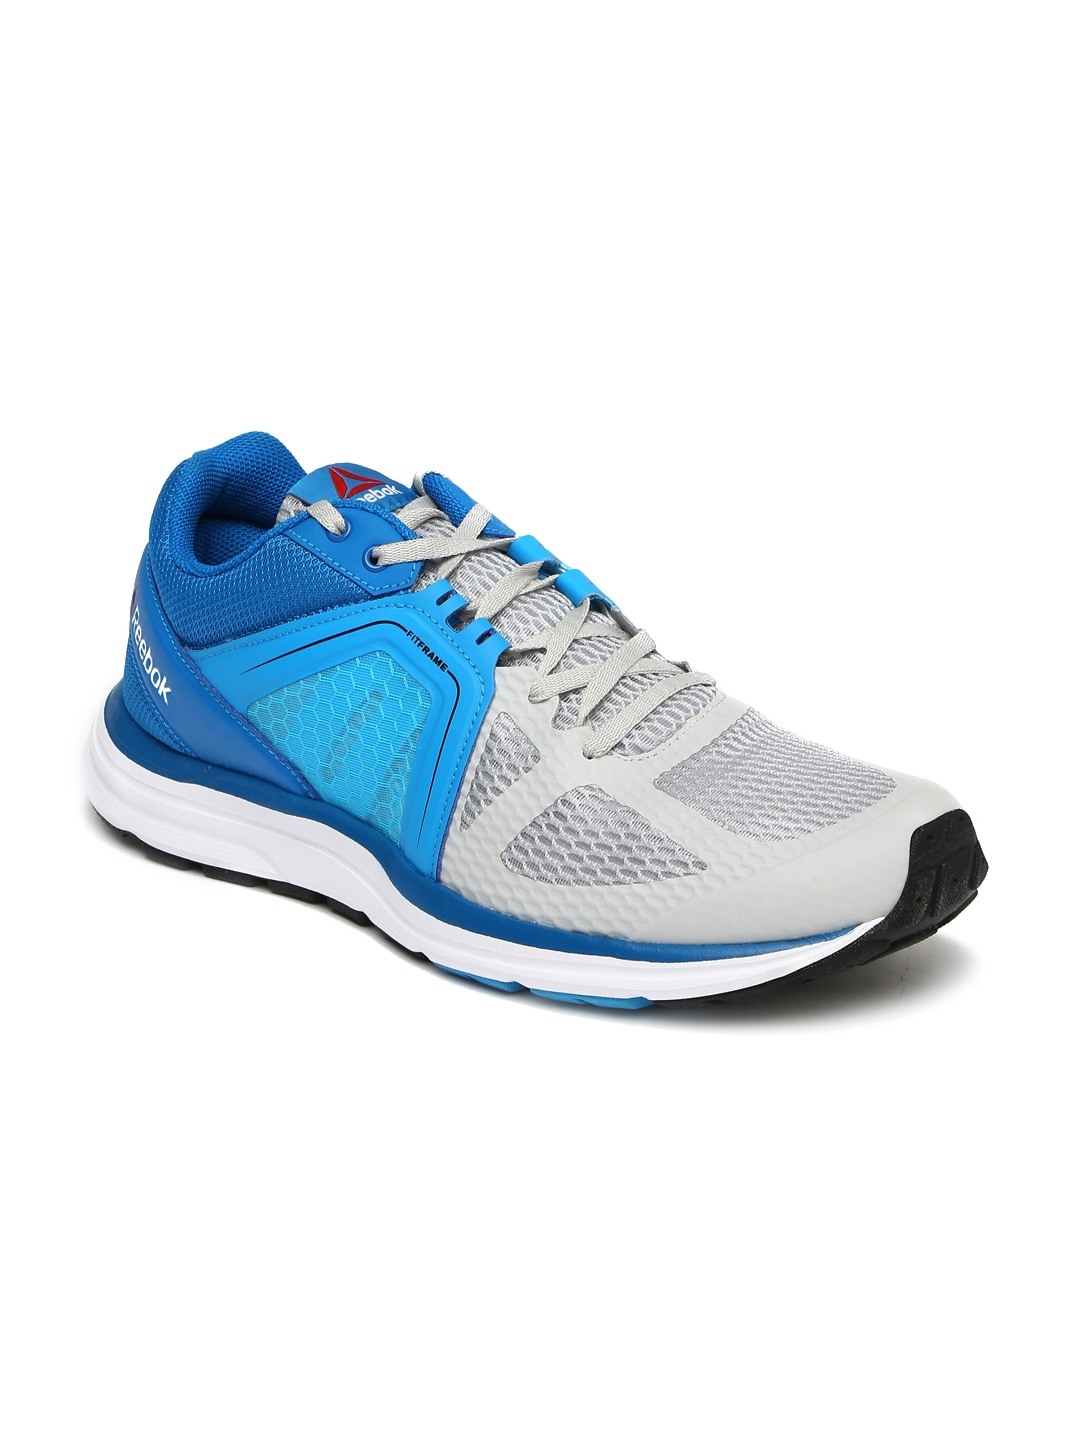 ff0840db510 Reebok ar0339 Men Grey Exhilarun 2 0 Running Shoes - Best Price in ...